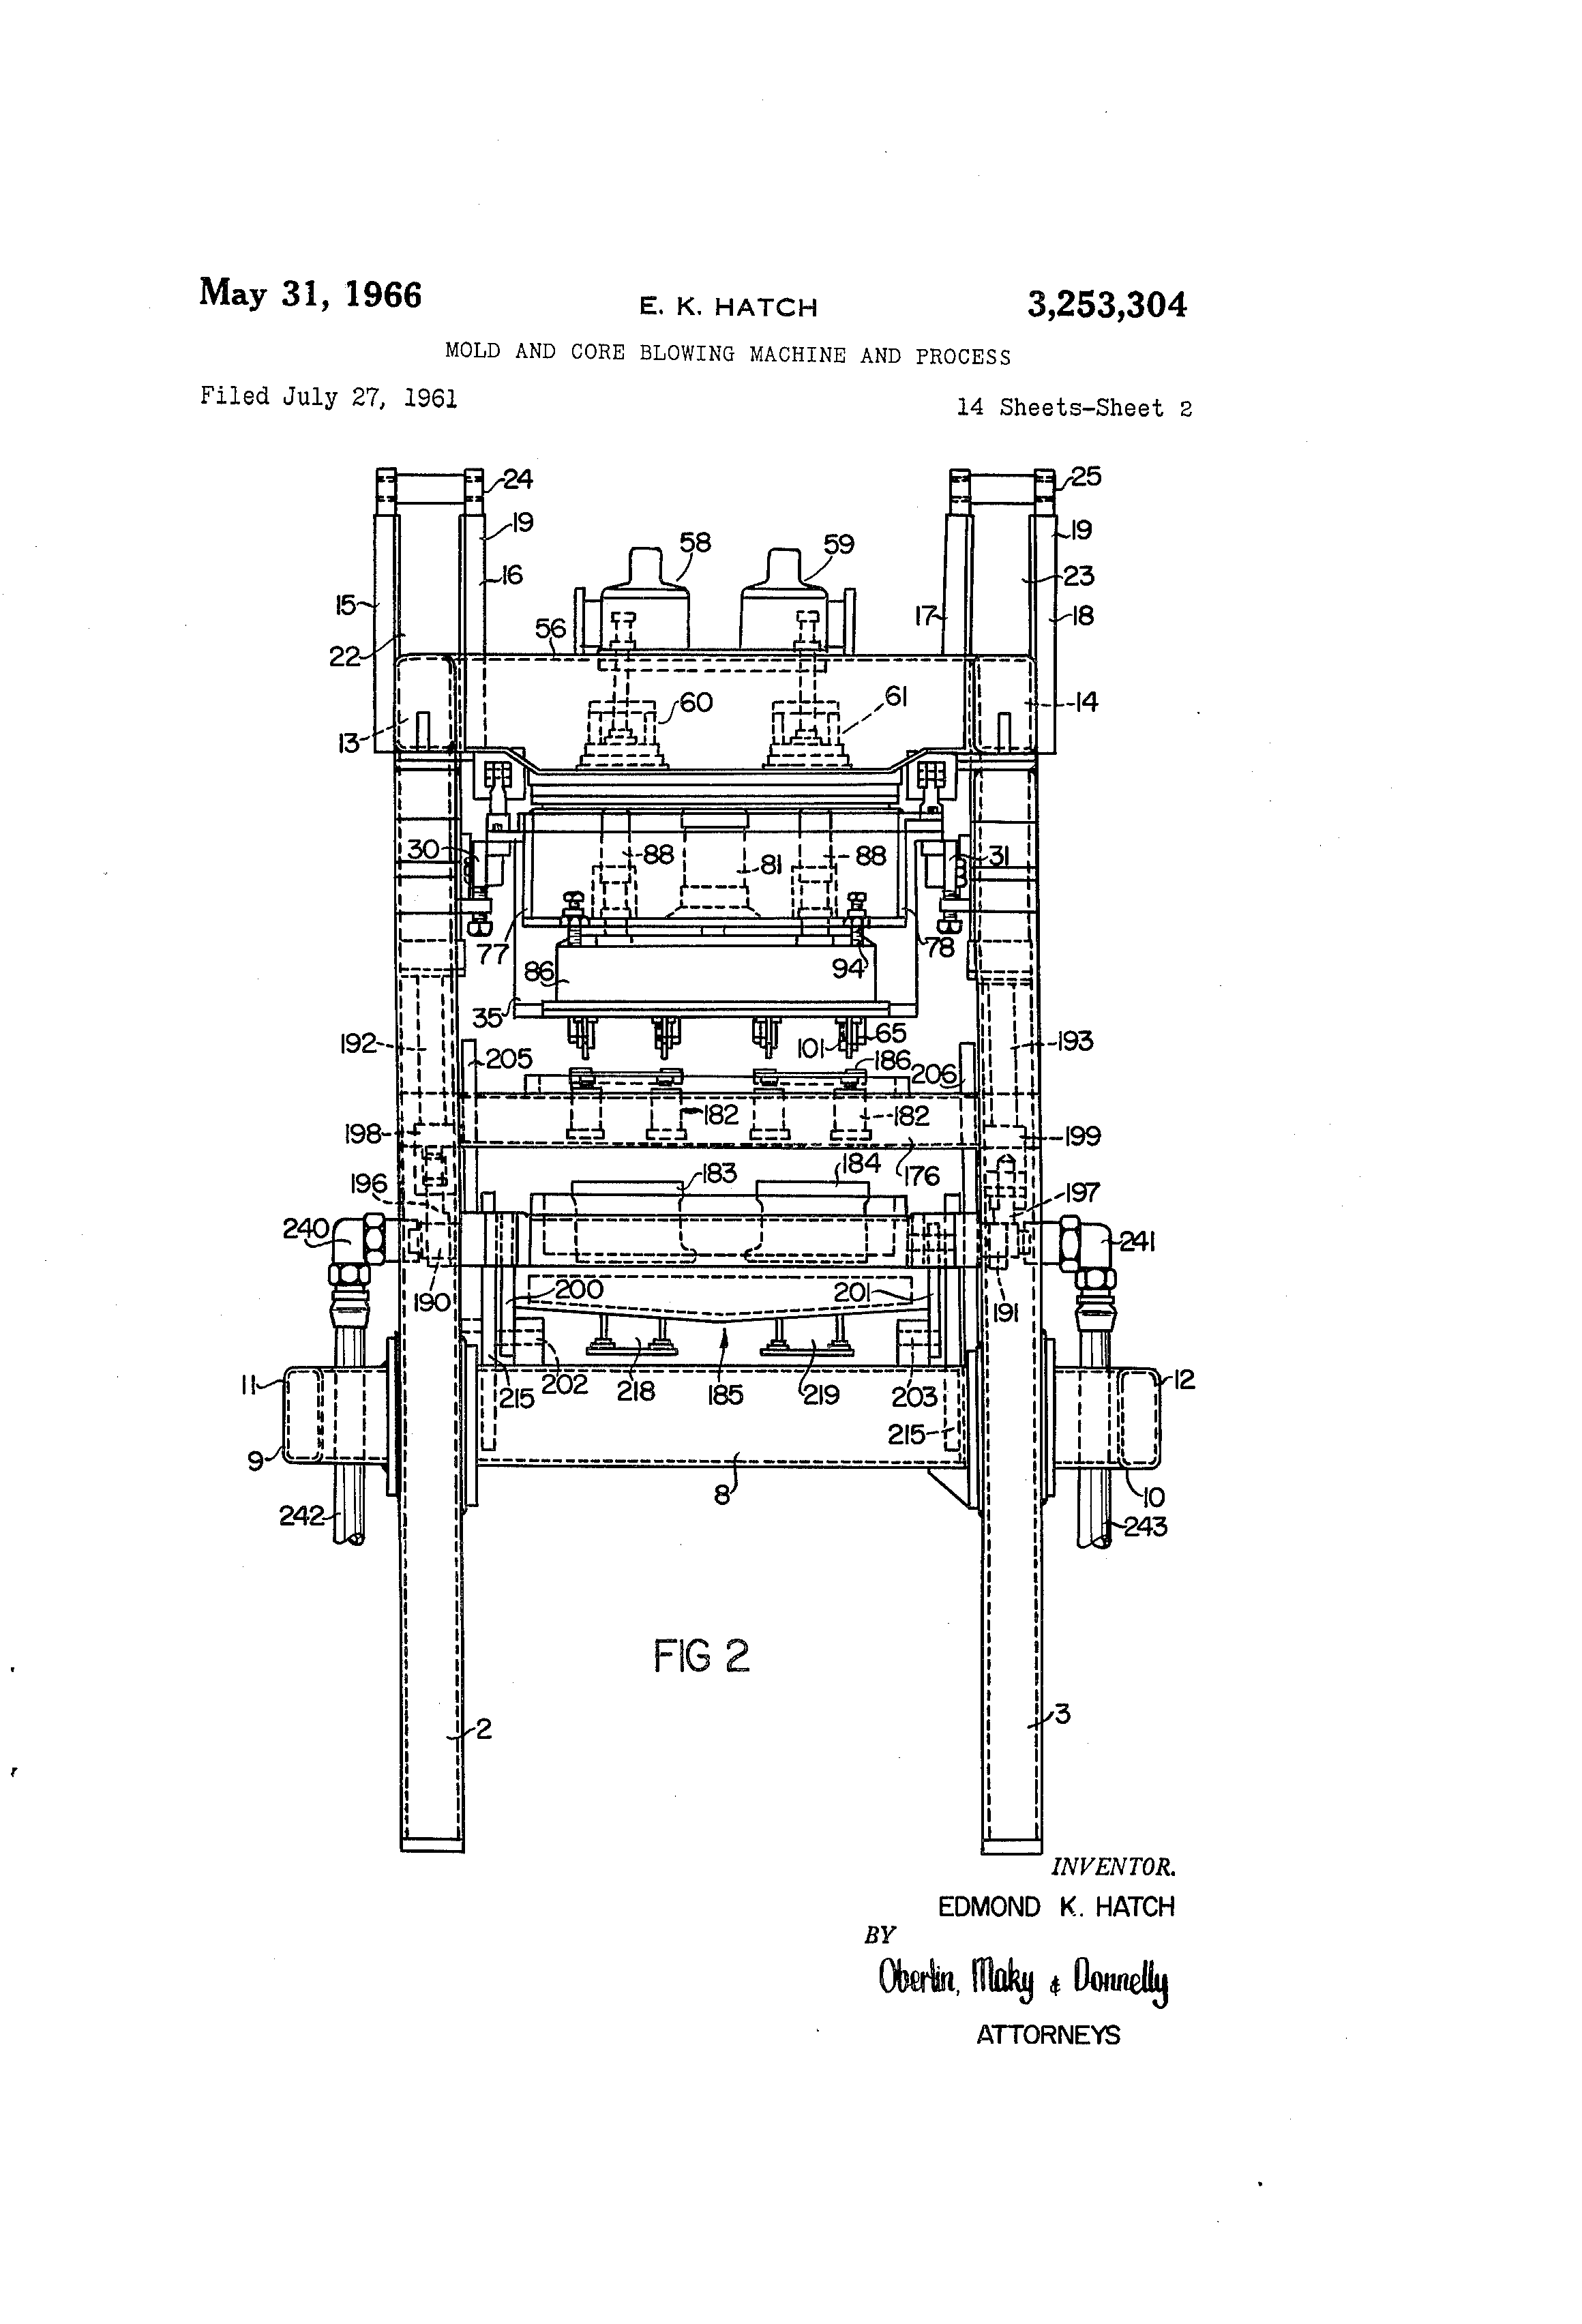 US3253304 1 patent us3253304 mold and core blowing machine and process  at sewacar.co